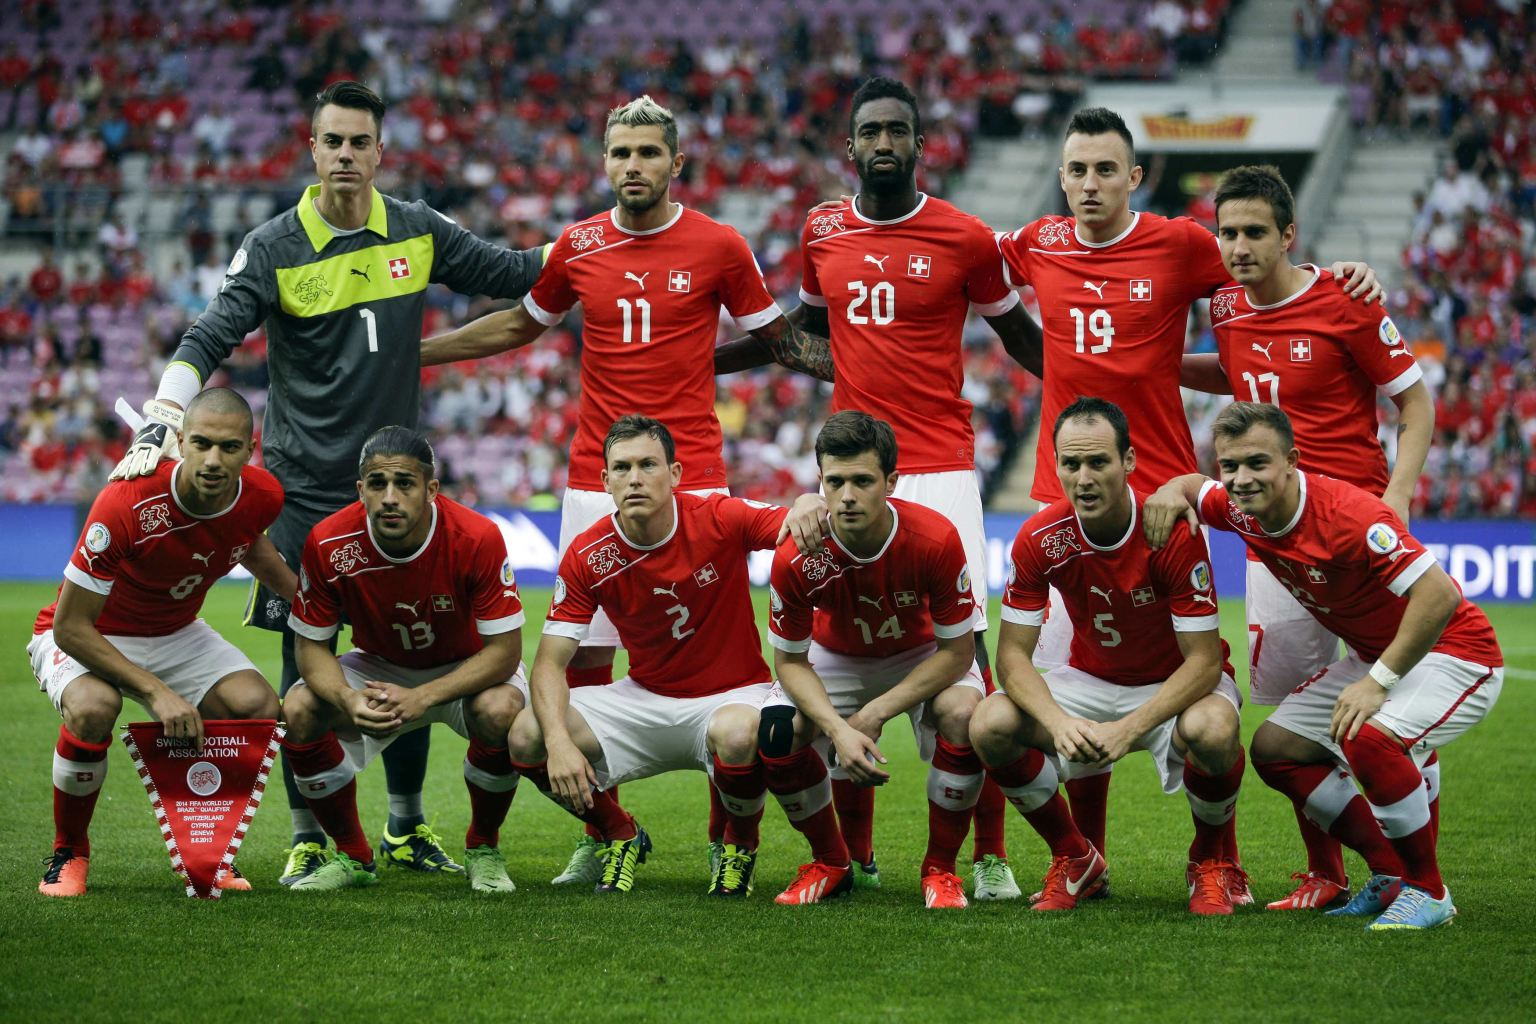 For a team photo before their 2014 world cup qualifying soccer match